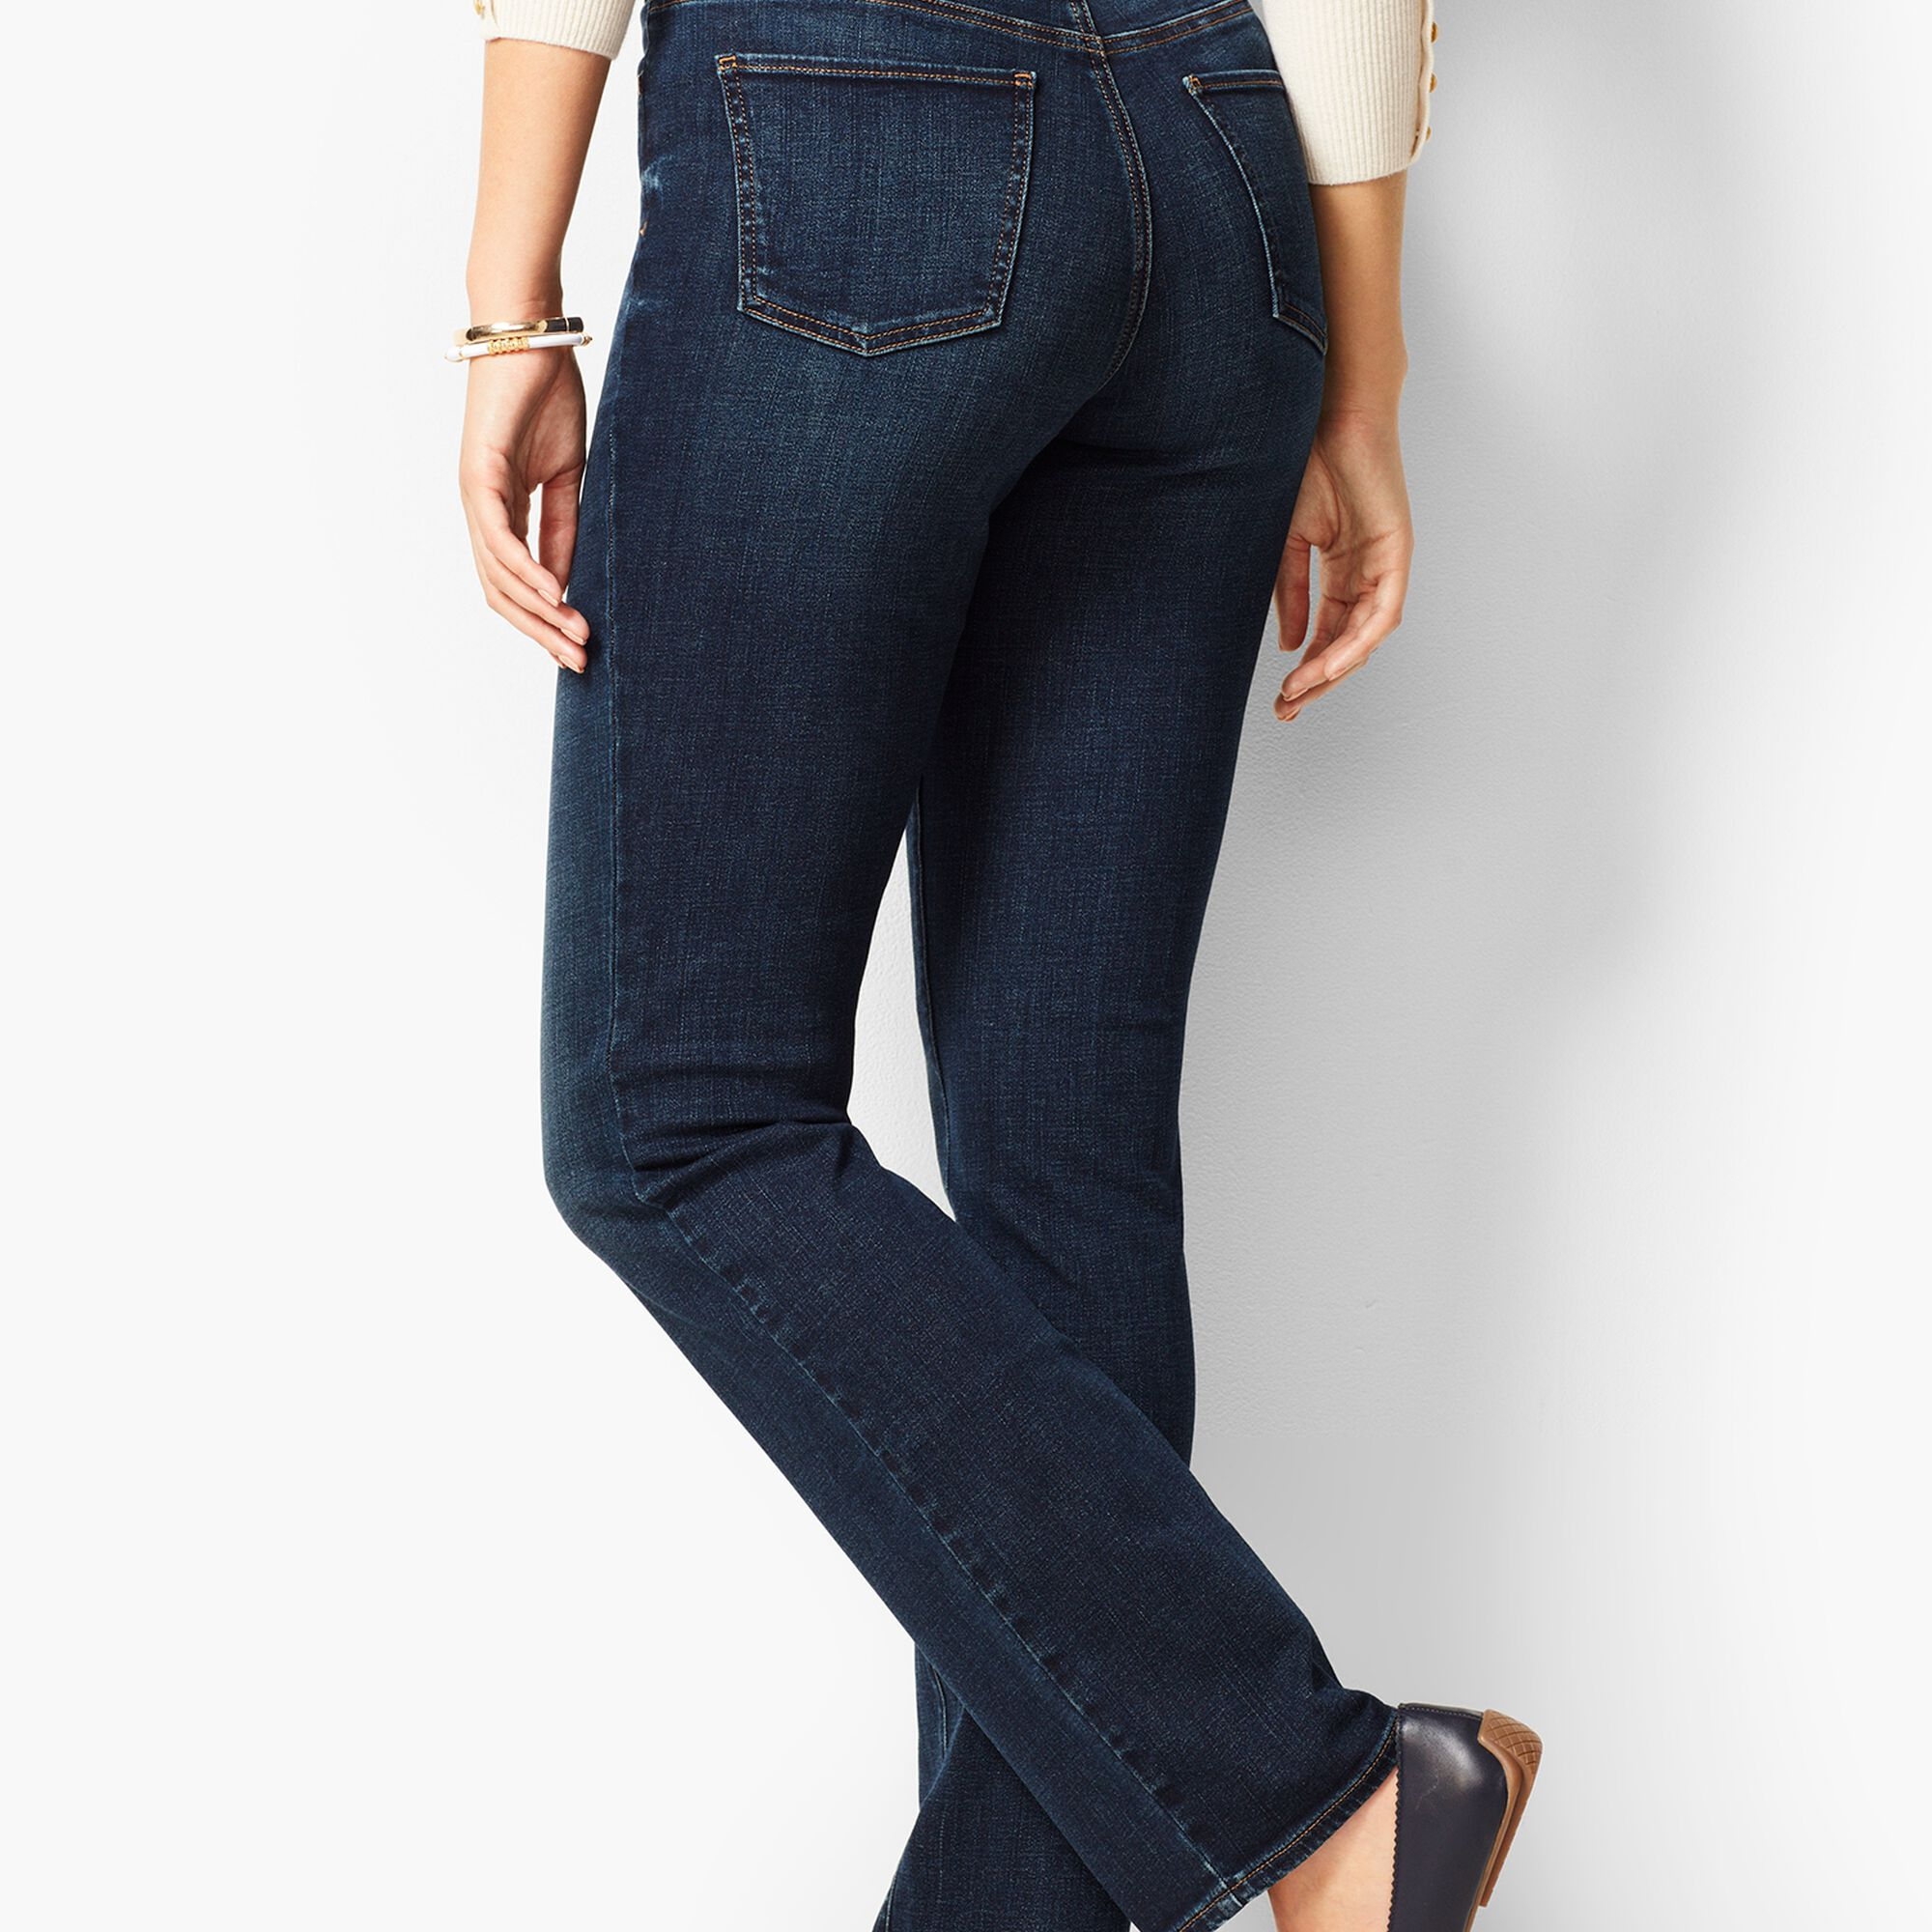 bb358afde5b High-Waist Barely Boot Jeans - Pioneer Wash - Curvy Fit